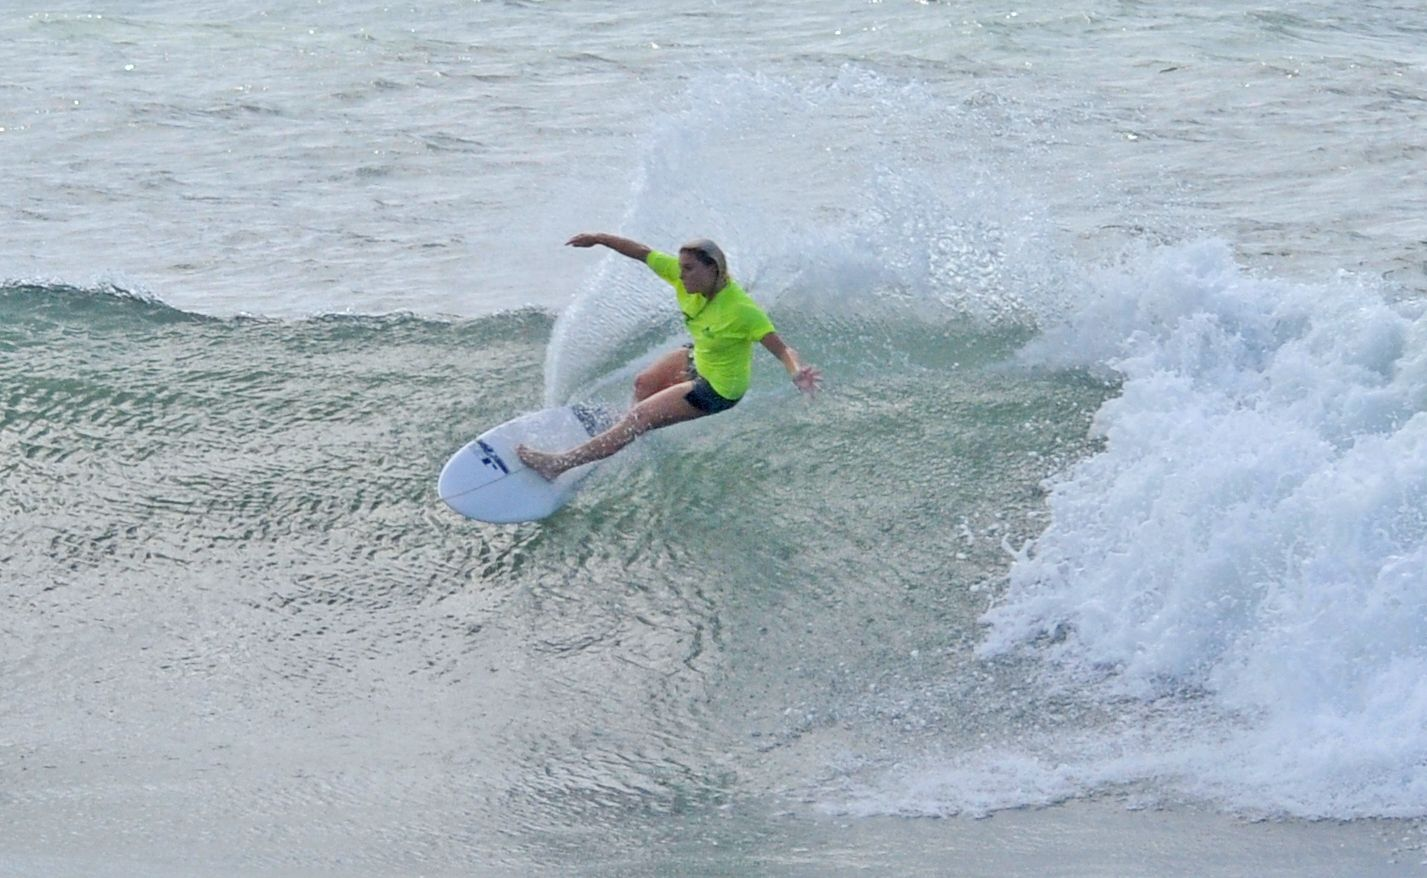 Dimity Stoyle in action at Burleigh.